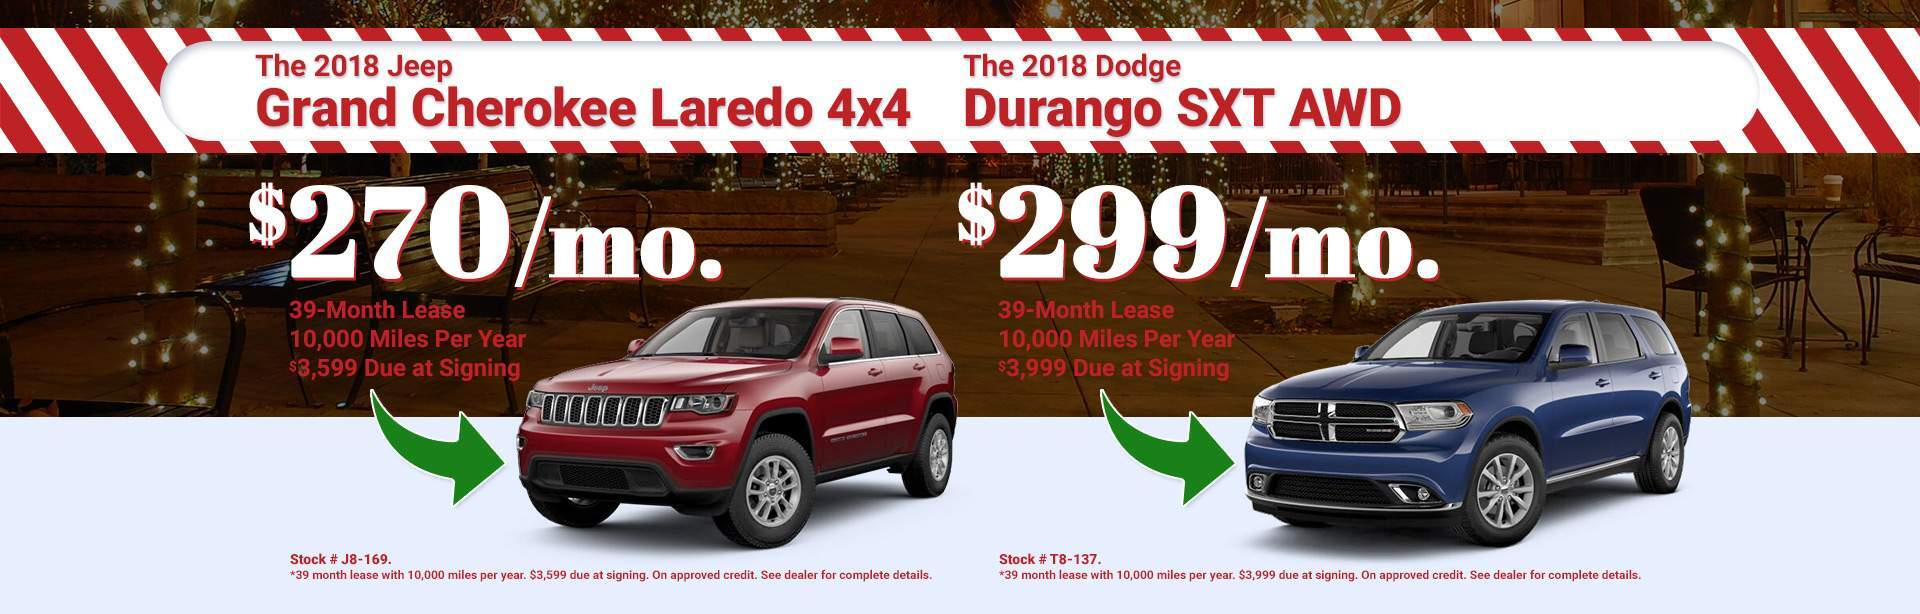 2018 JEEP Grand Cherokee & Dodge Durango